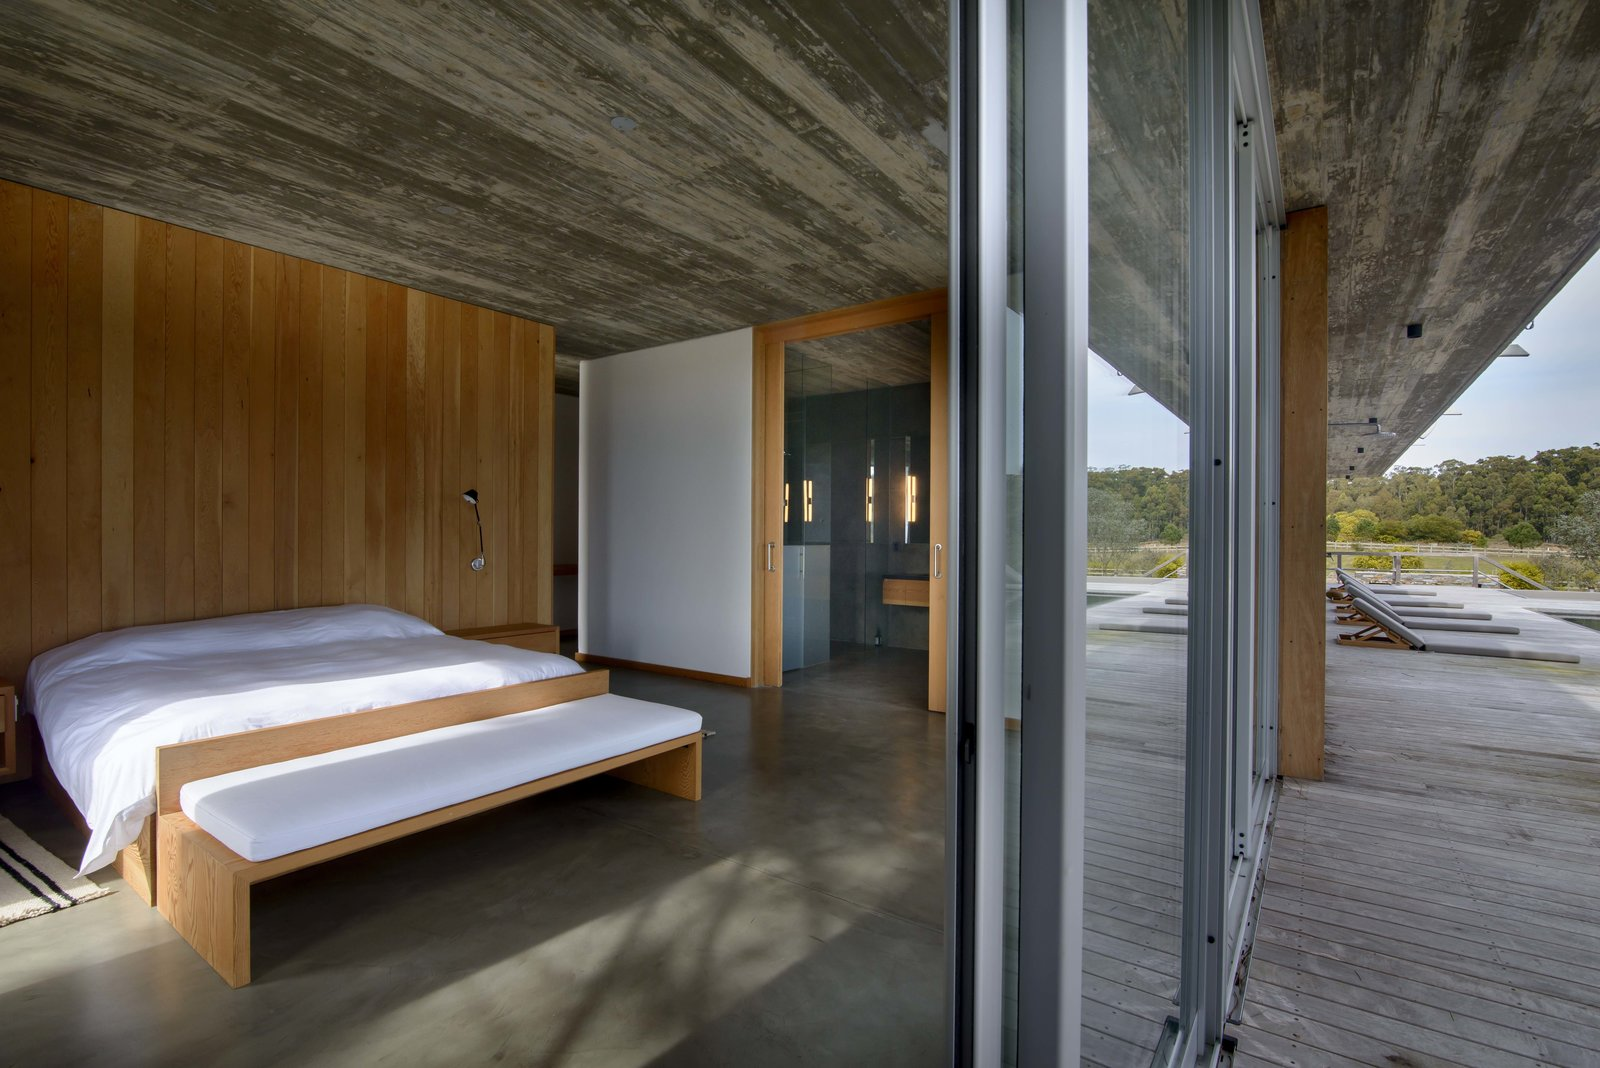 Bedroom, Bed, Wall Lighting, Ceiling Lighting, and Bench  Rückenwind